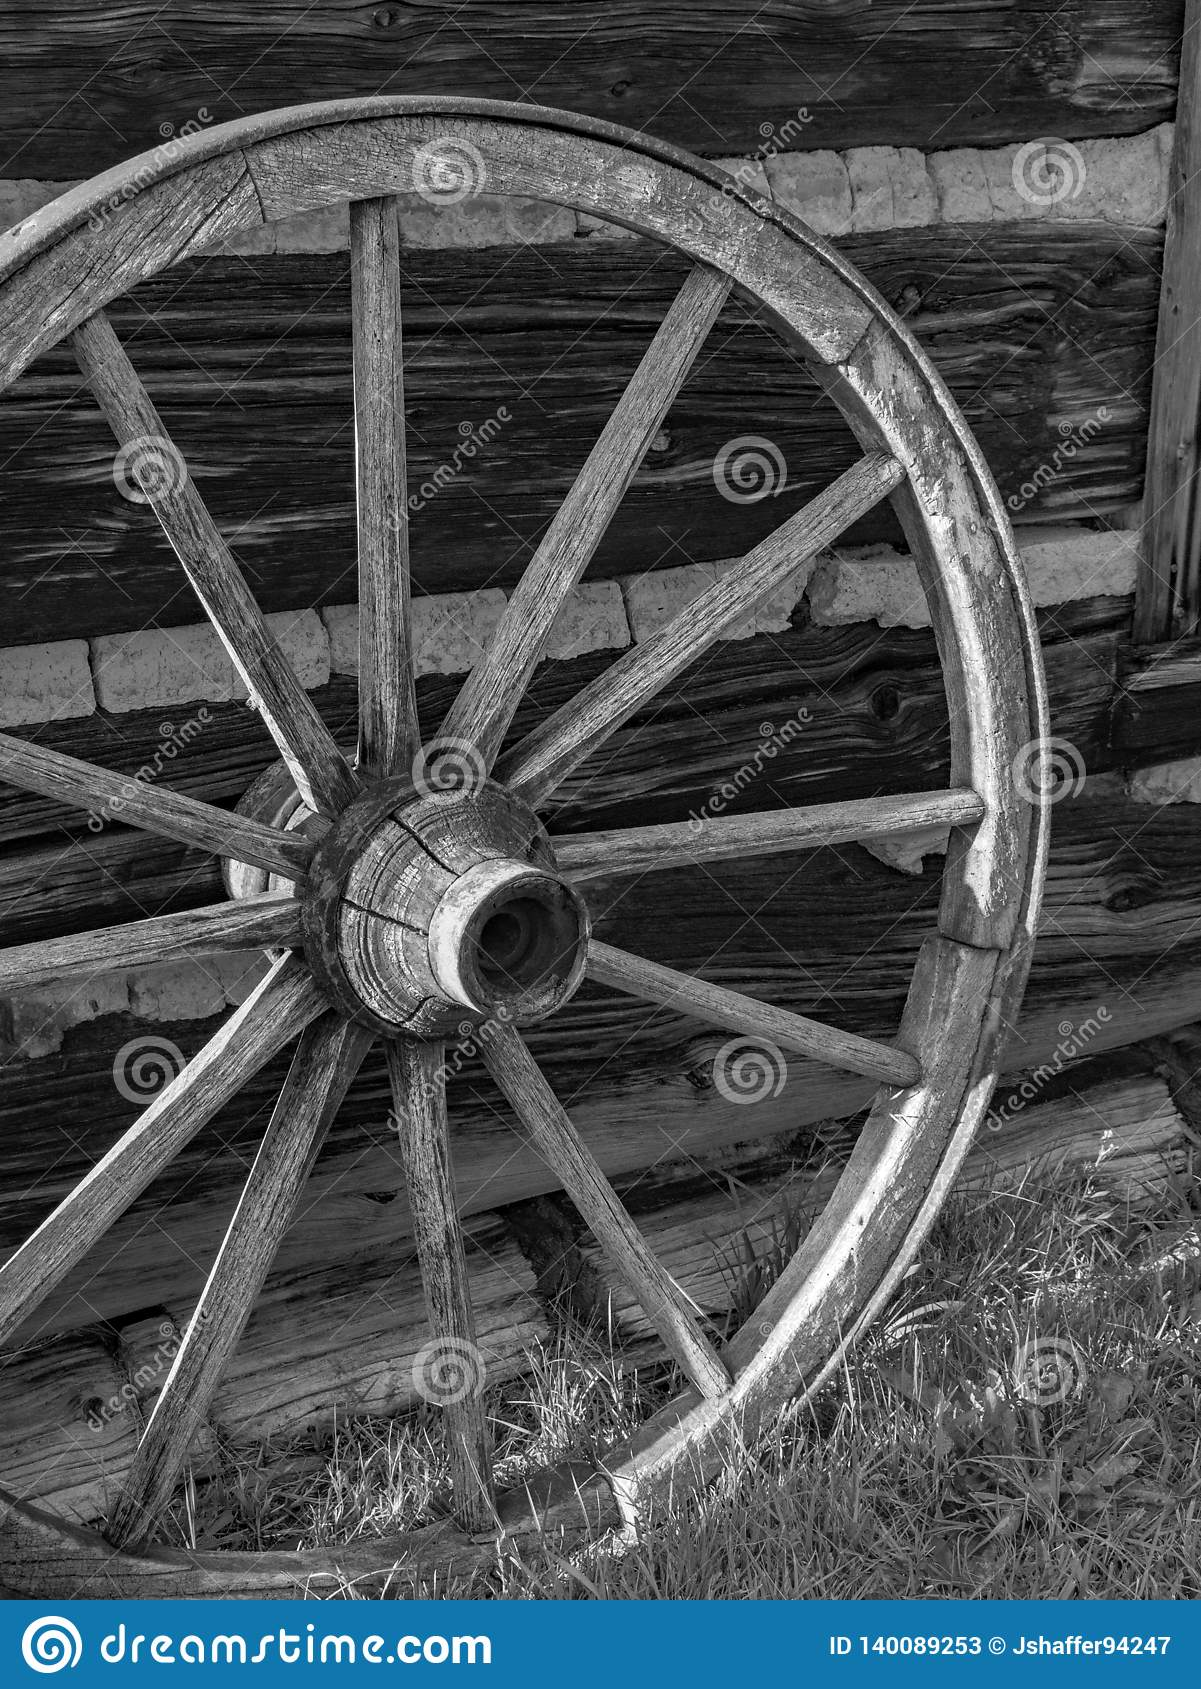 Antique wooden wagon wheel against wooden barn.